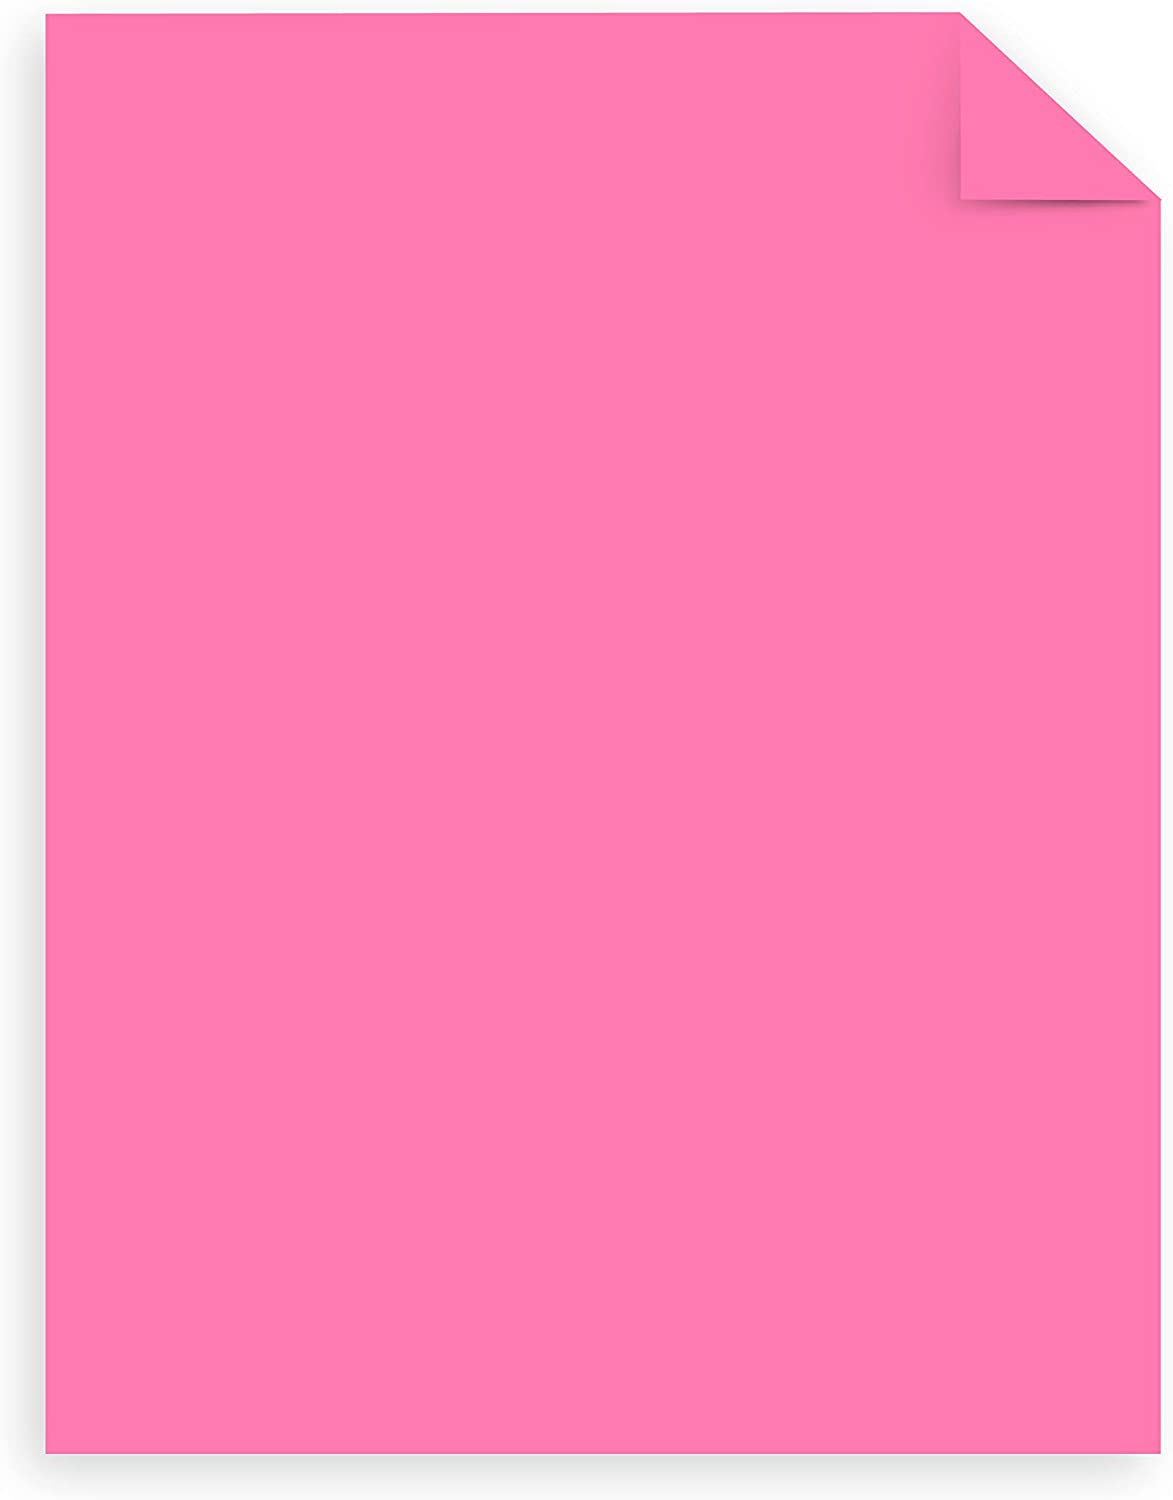 Neon Pink More Sheets! 24 lb//89 GSM 625 CT. Exclusive 91673 Astrobrights Mega Collection Colored Paper 8 /½ x 11